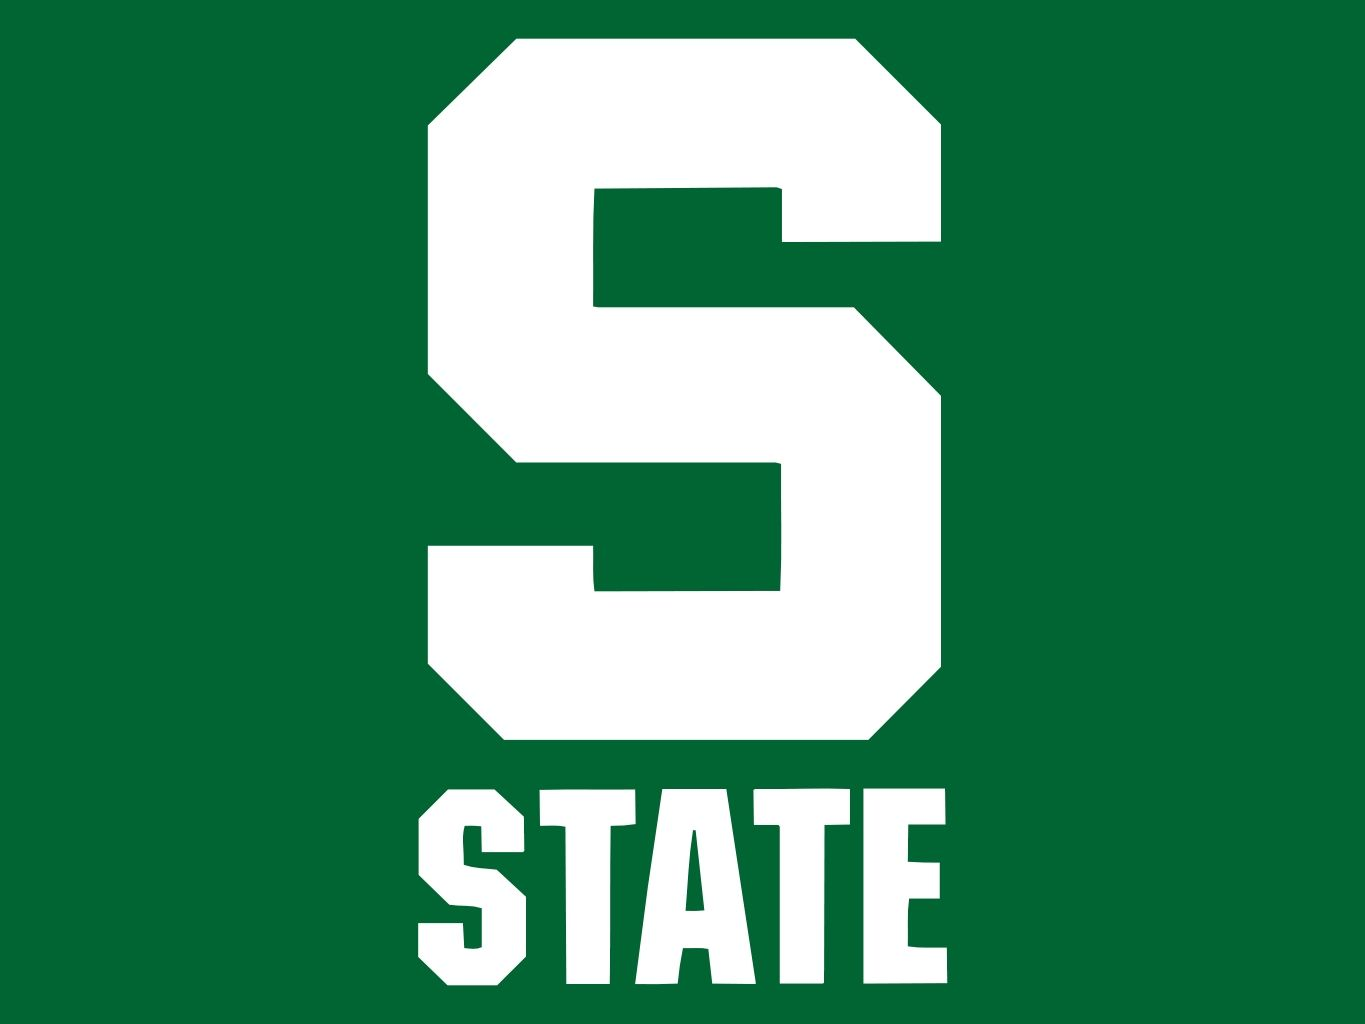 images of michigan state spartans michigan state spartans alonda rh pinterest co uk michigan state logo images michigan state logo vector